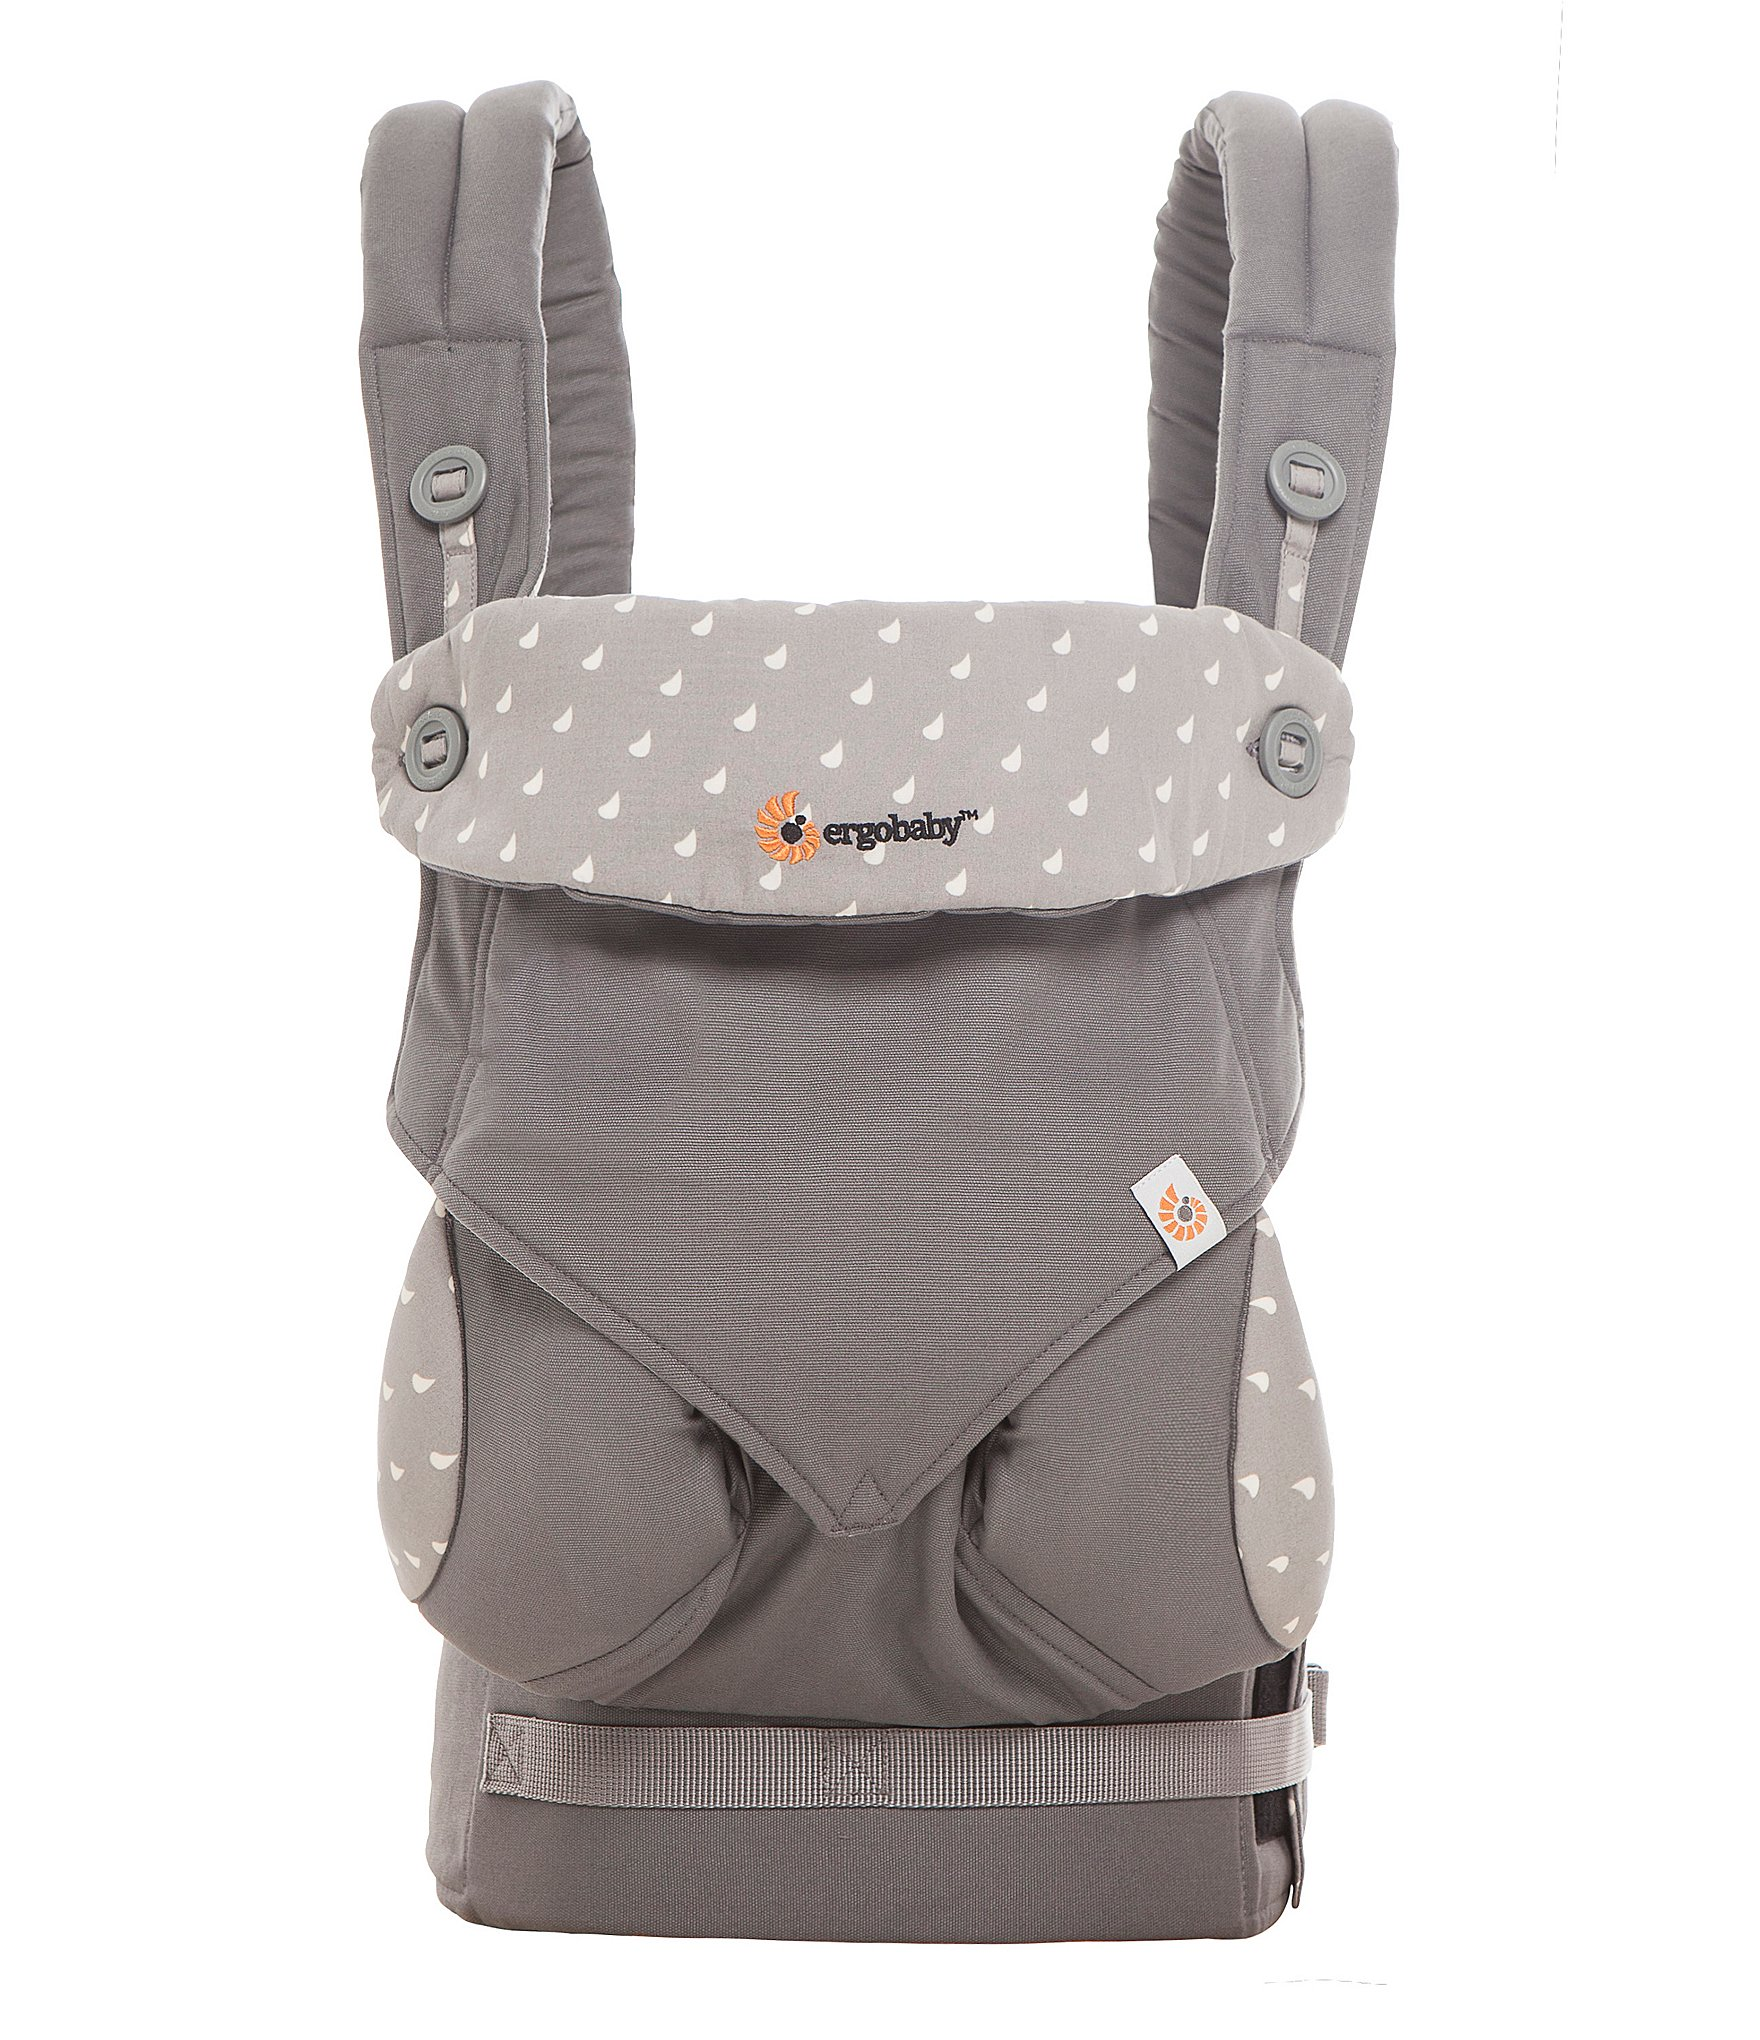 Ergobaby All Position 360 Baby Carrier Dillard S